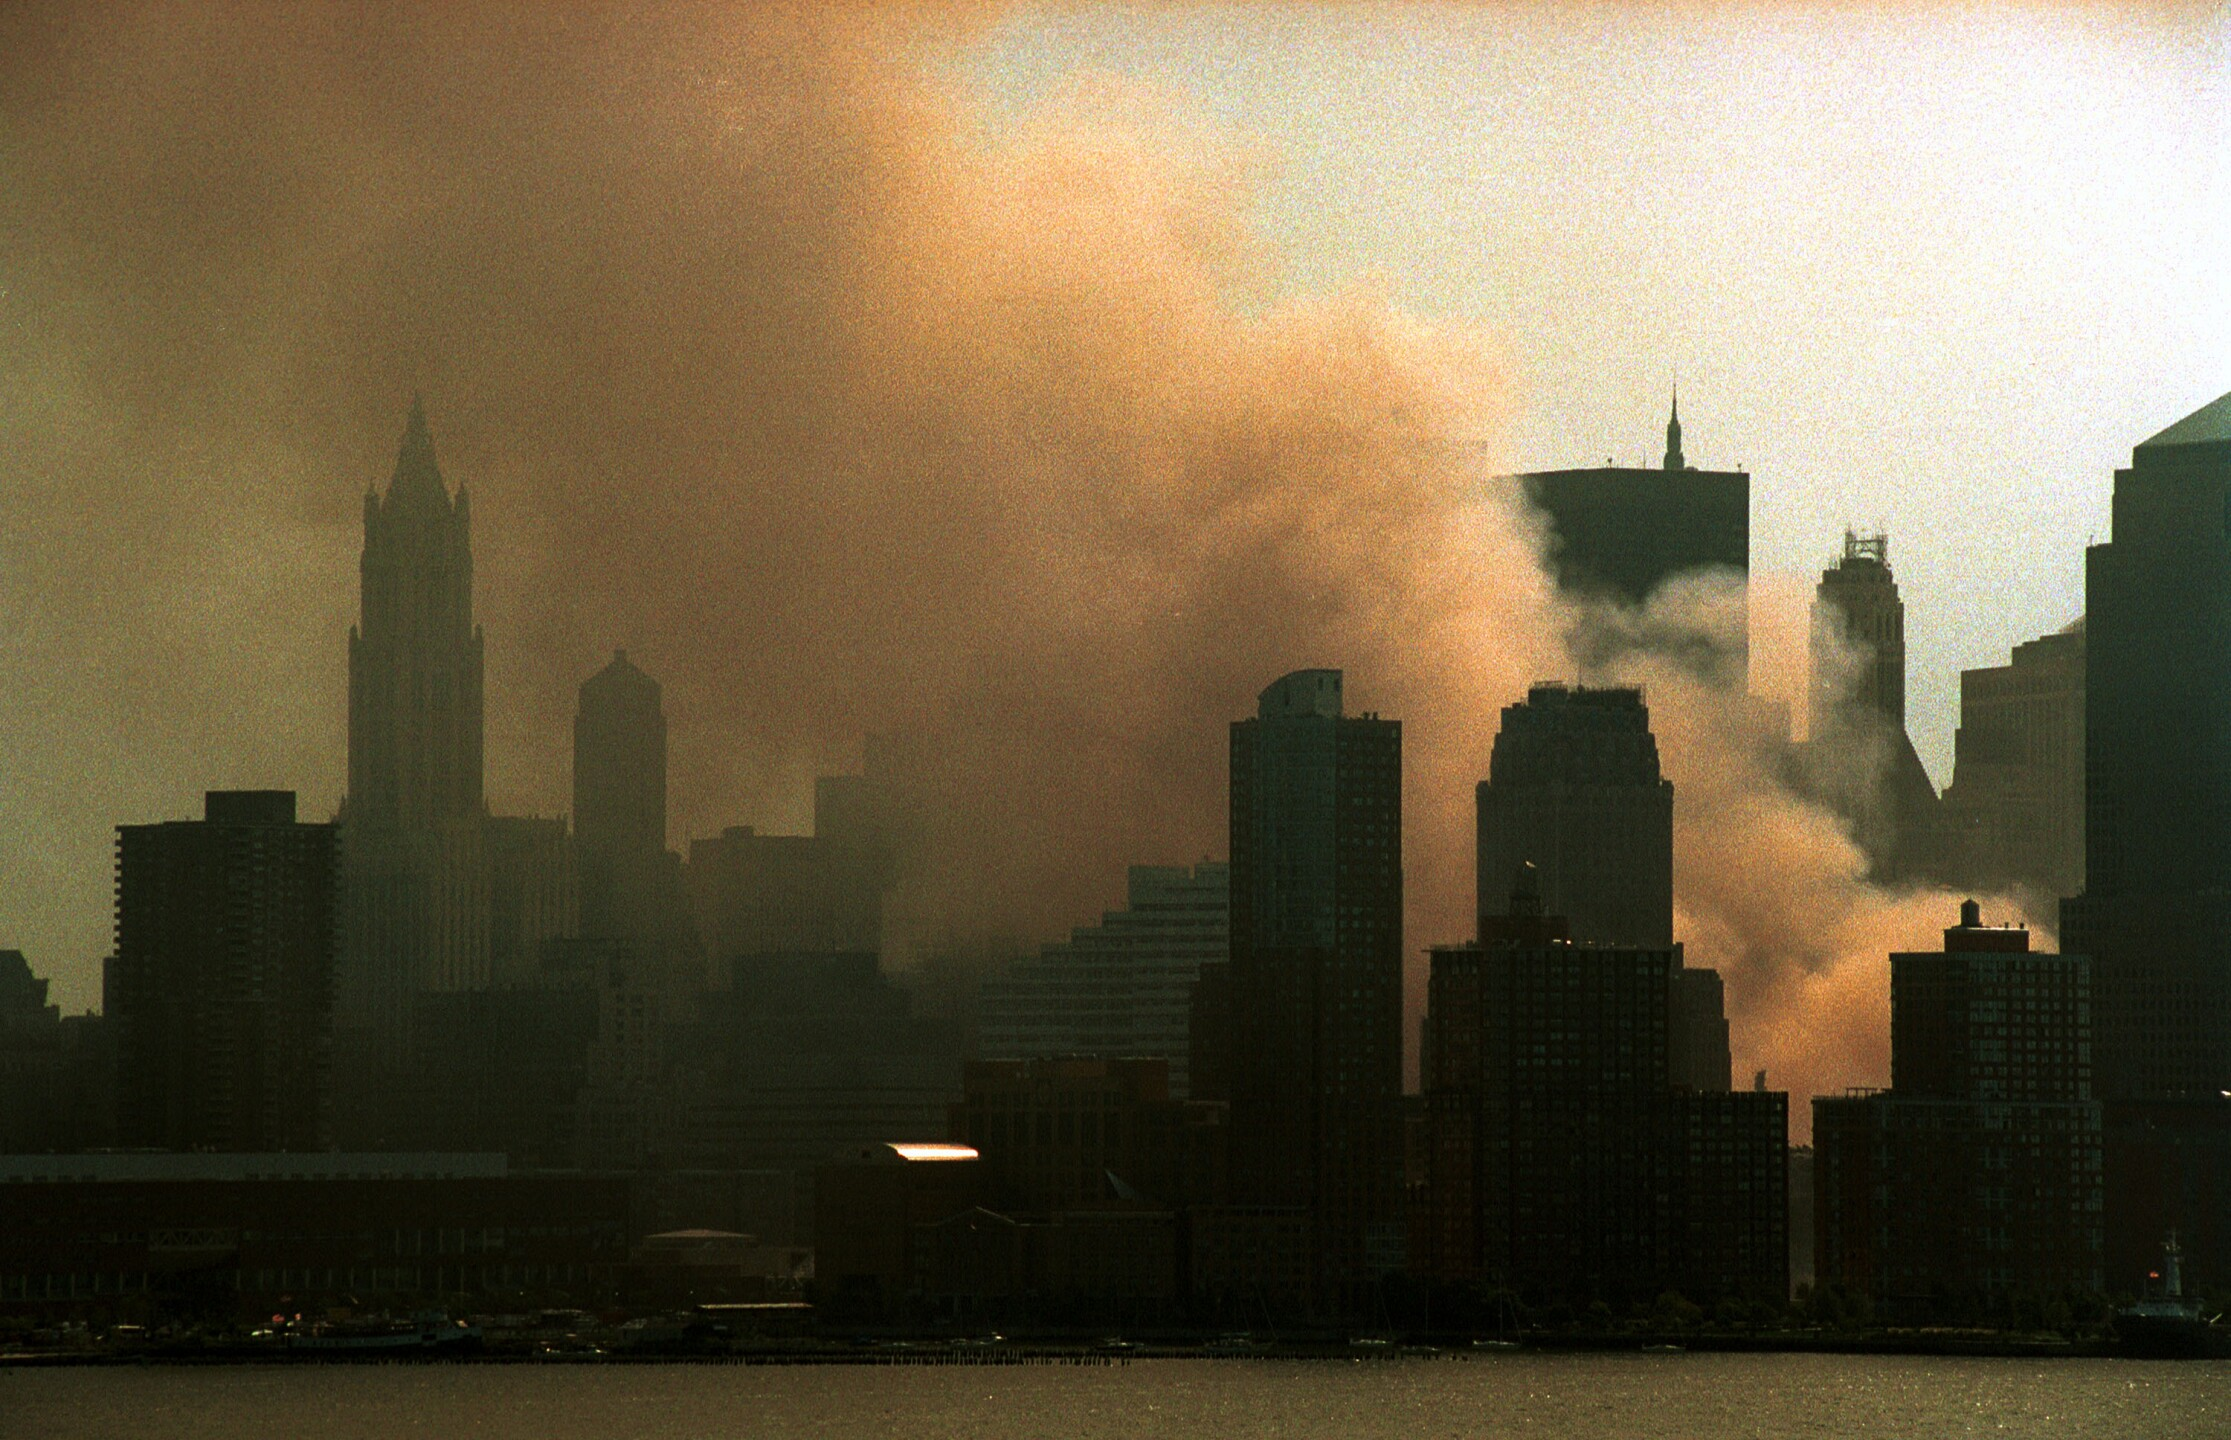 Aftermath of World Trade Center Attack